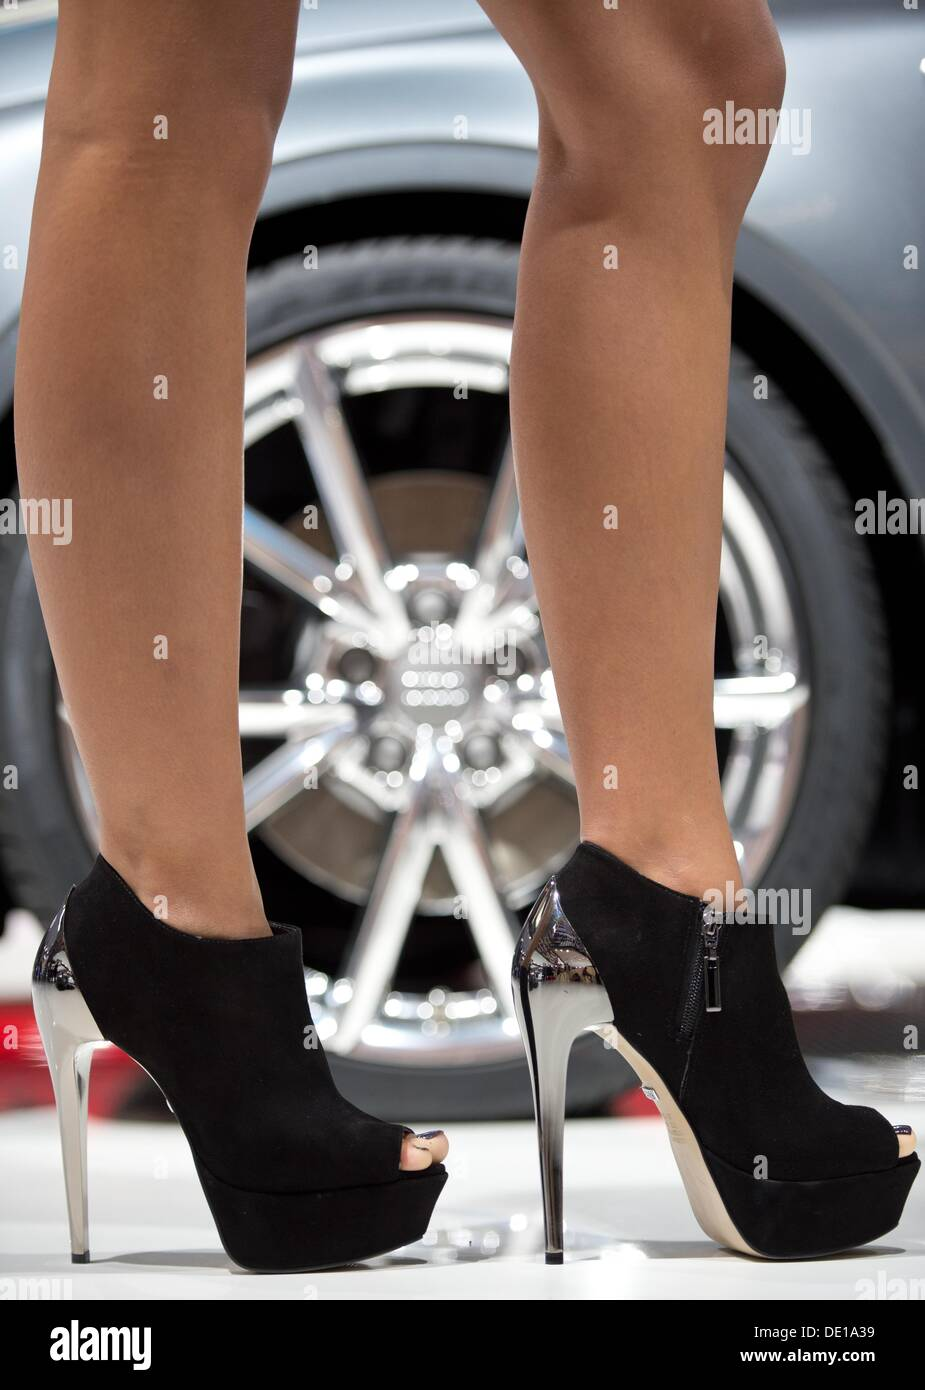 1a9eefb16c8 A hostess wearing chrome-plated high heels stands in front of an alloy  wheel at